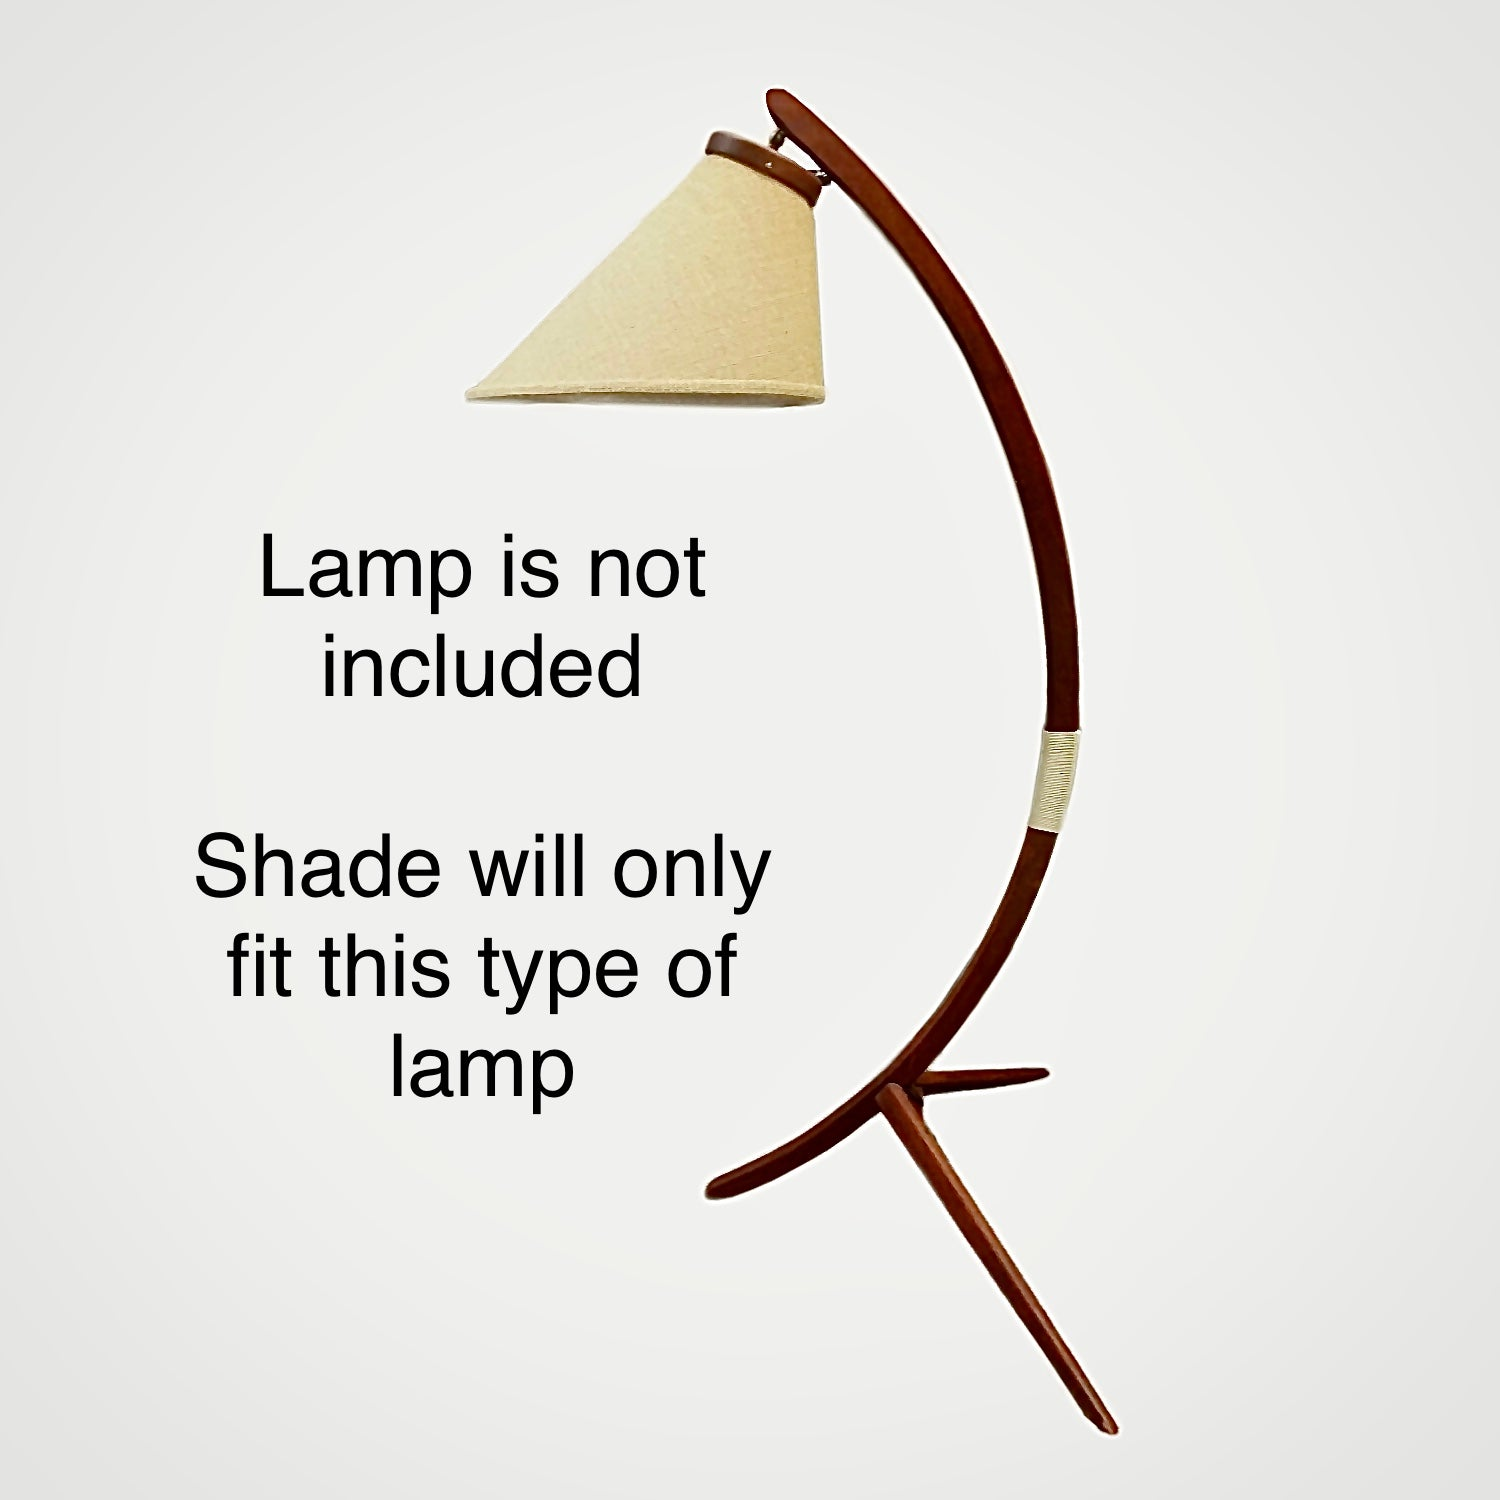 These shades will only fit this type of lamp.